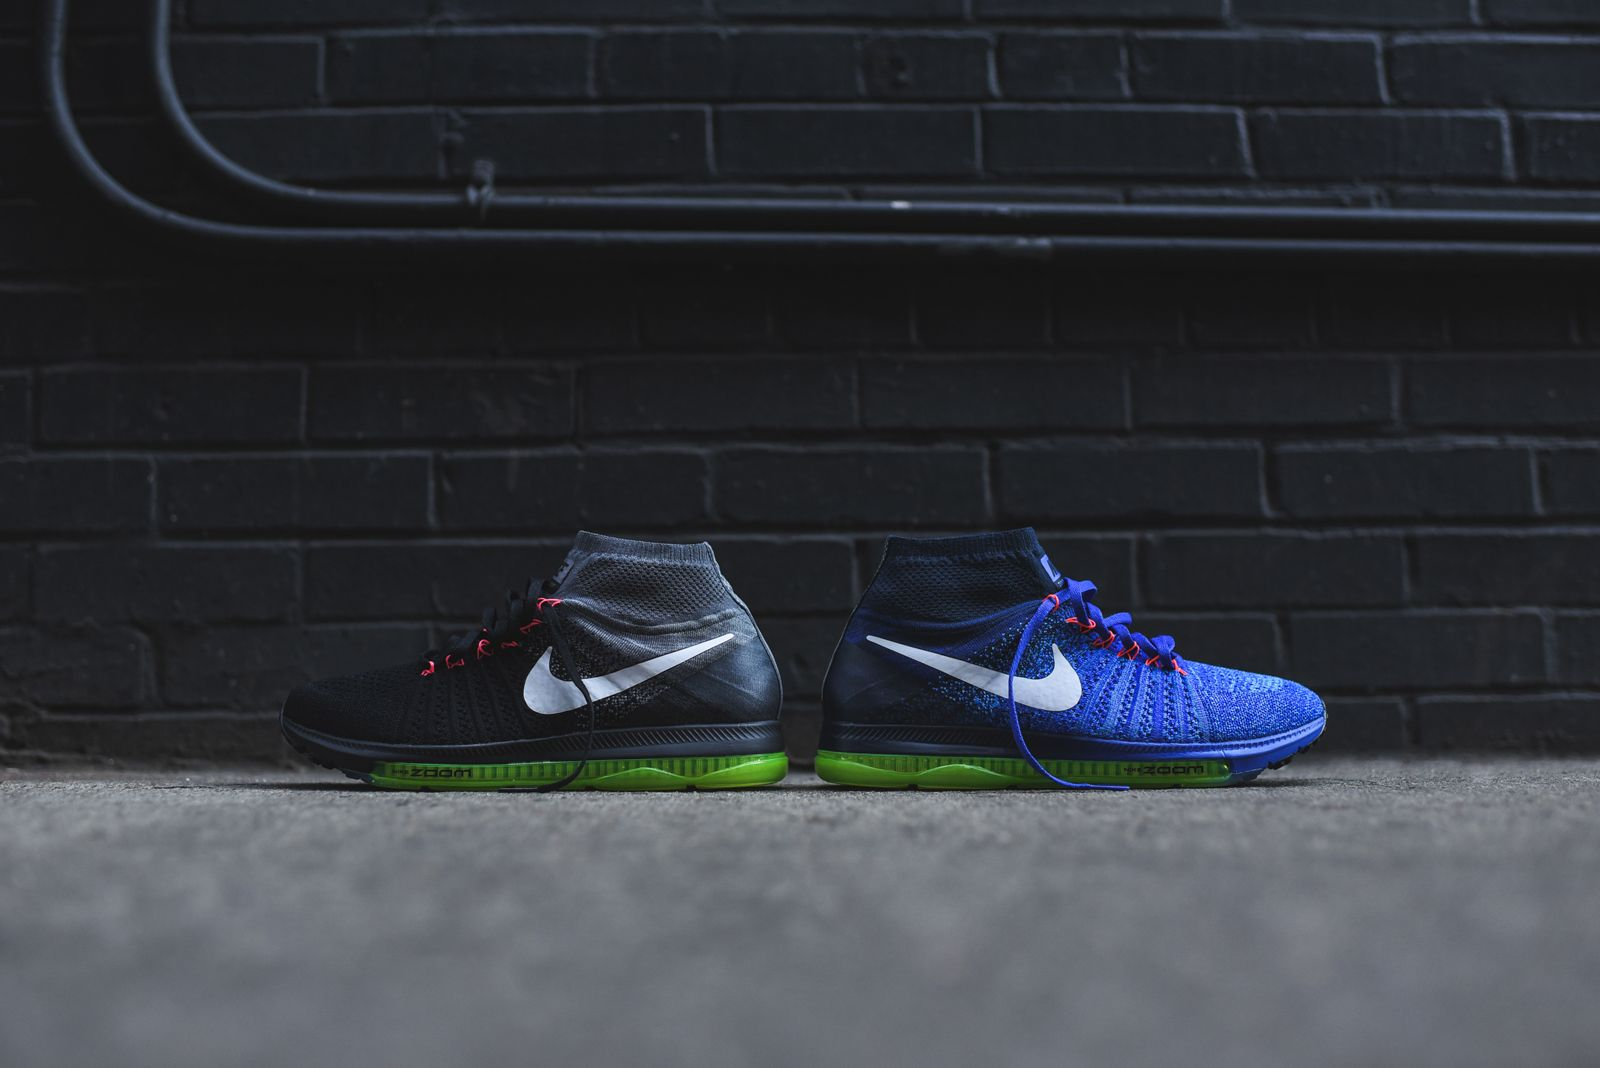 supra footwear paris - The Nike Kyrie 2 Duke PE Will Get A Retail Release | Duke, Nike ...